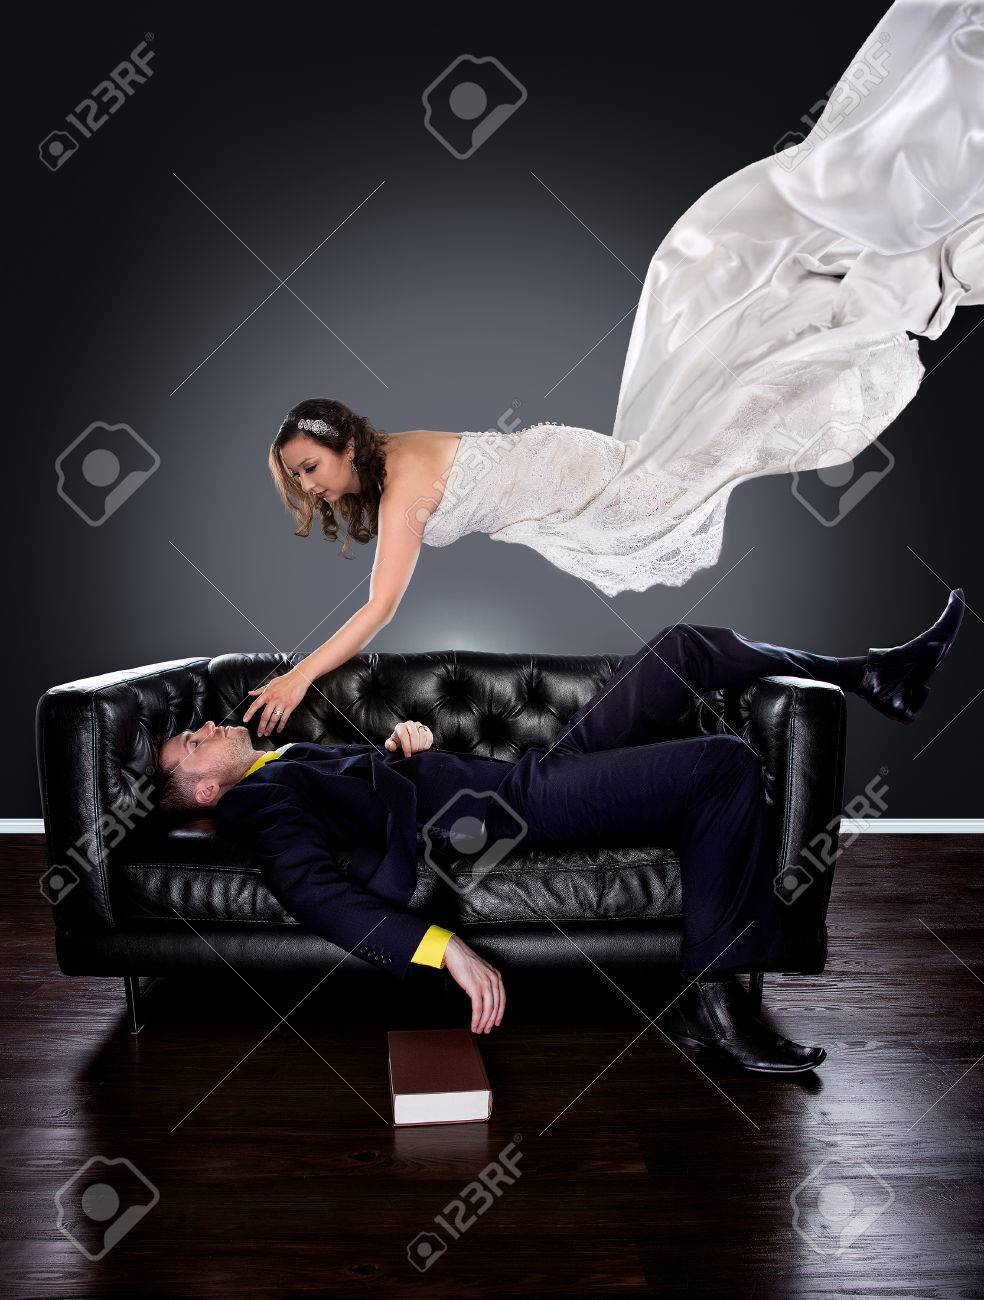 Man Dreaming On A Couch Of A Girl In A Wedding Dress Floating